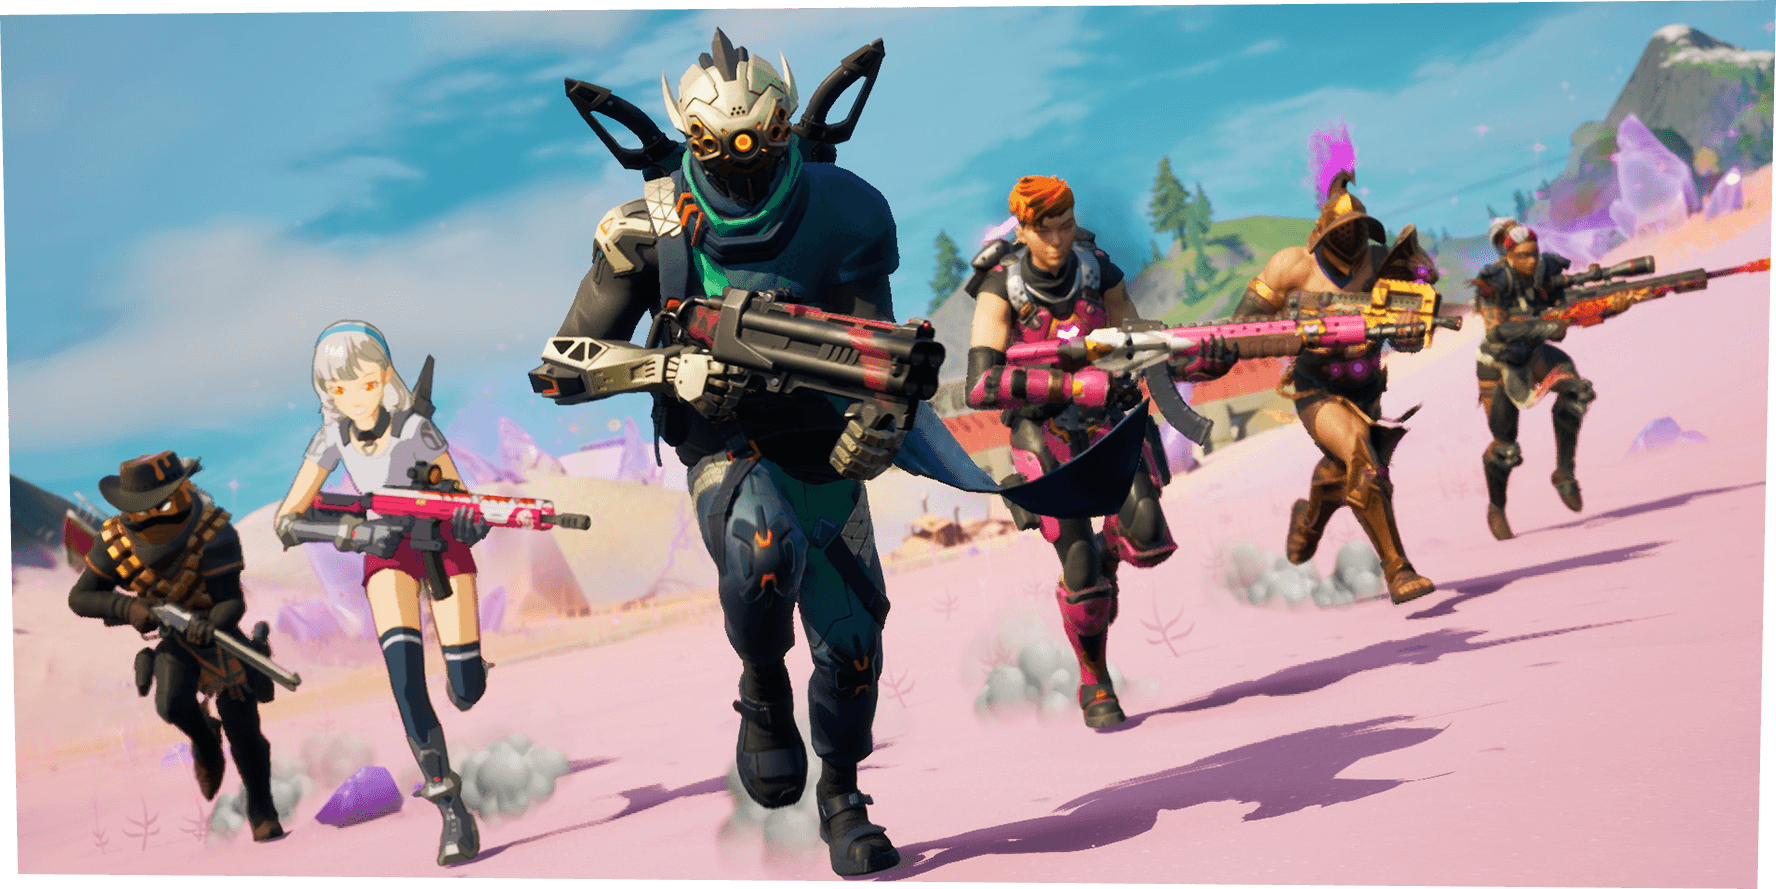 Fortnite characters holding some of Season 5's newest weapons.